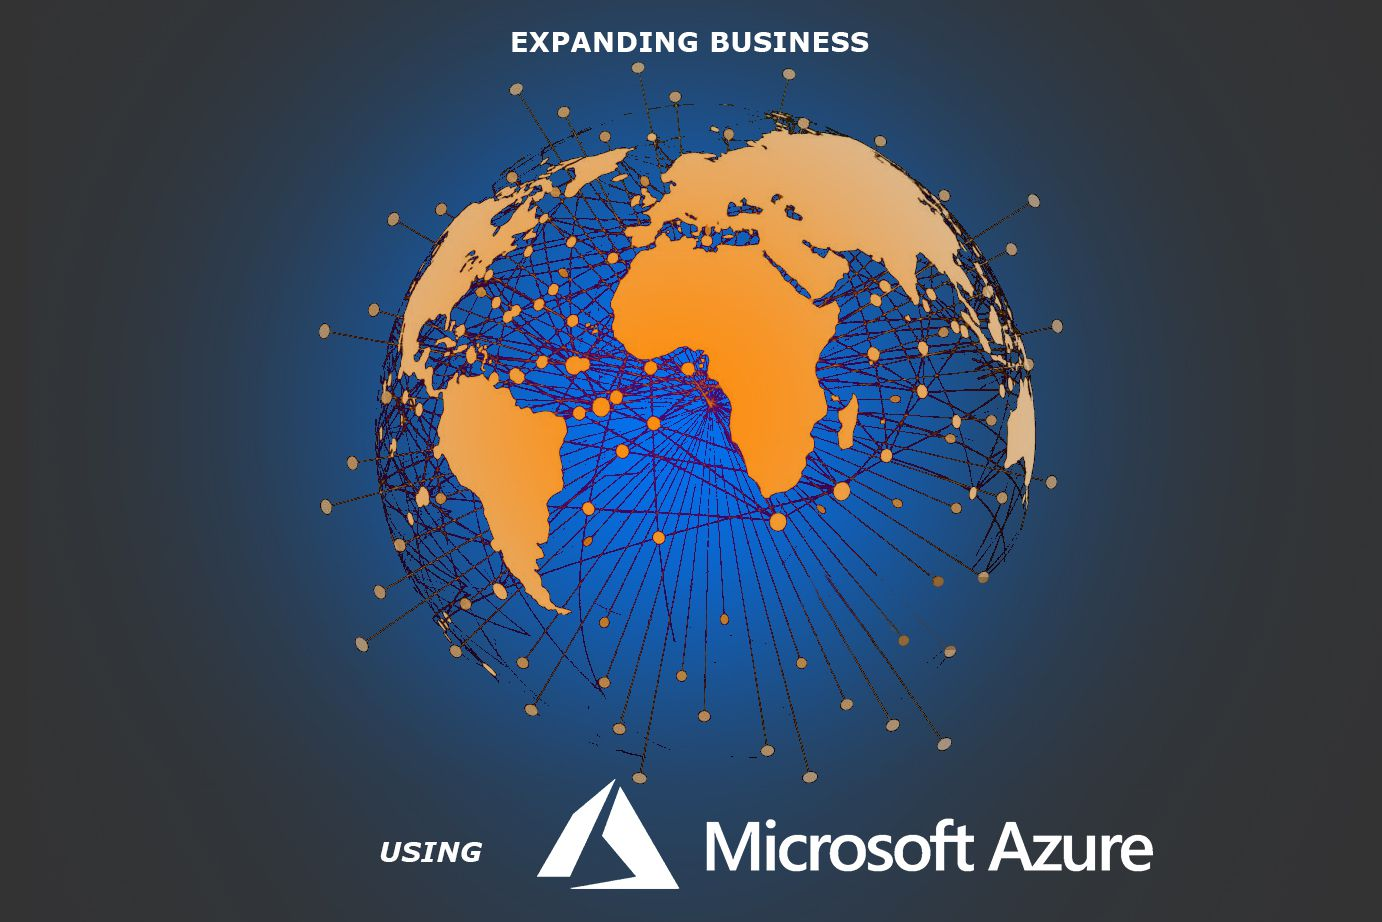 expanding-business-using-azure.jpg